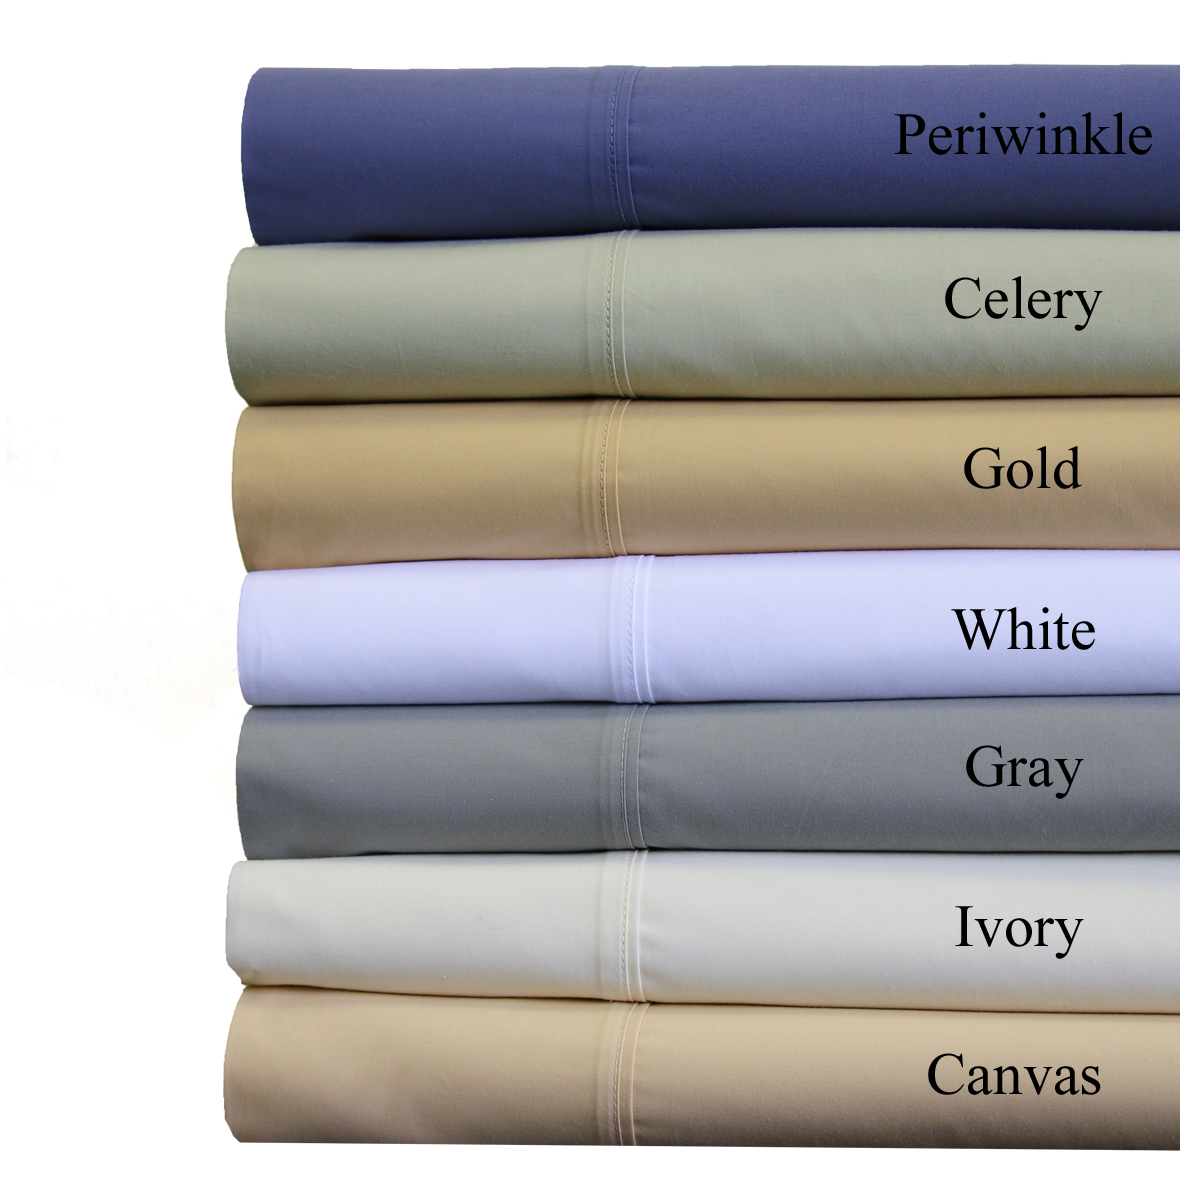 "Abripedic Crisp Percale, Breathable Crispy Soft 22"" Super Deep Pockets Percale Sheet Collection"